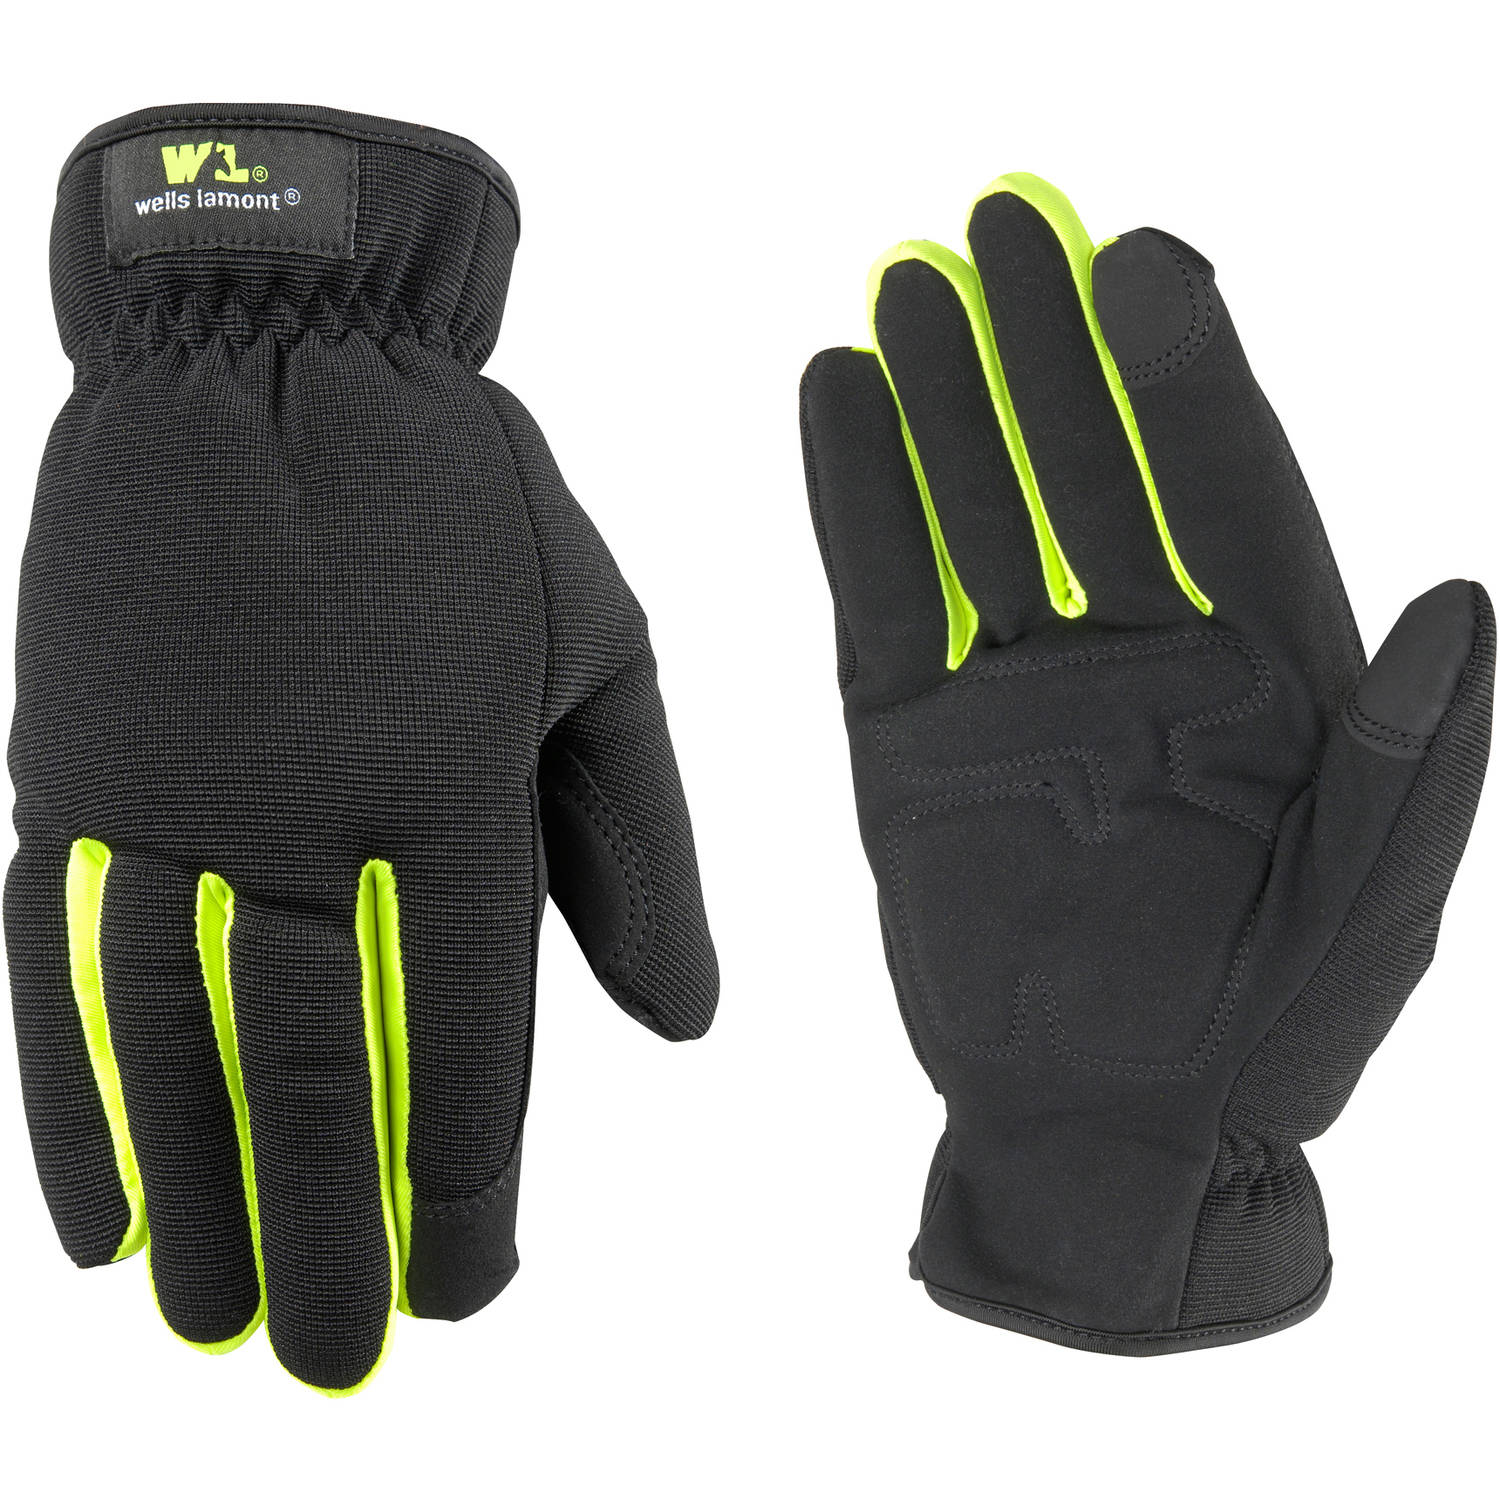 Wells Lamont Slip-On Synthetic Leather Hi-Dexterity Work Gloves with Touch Screen Technology and Leather Palm, Black/Hi-Viz Green